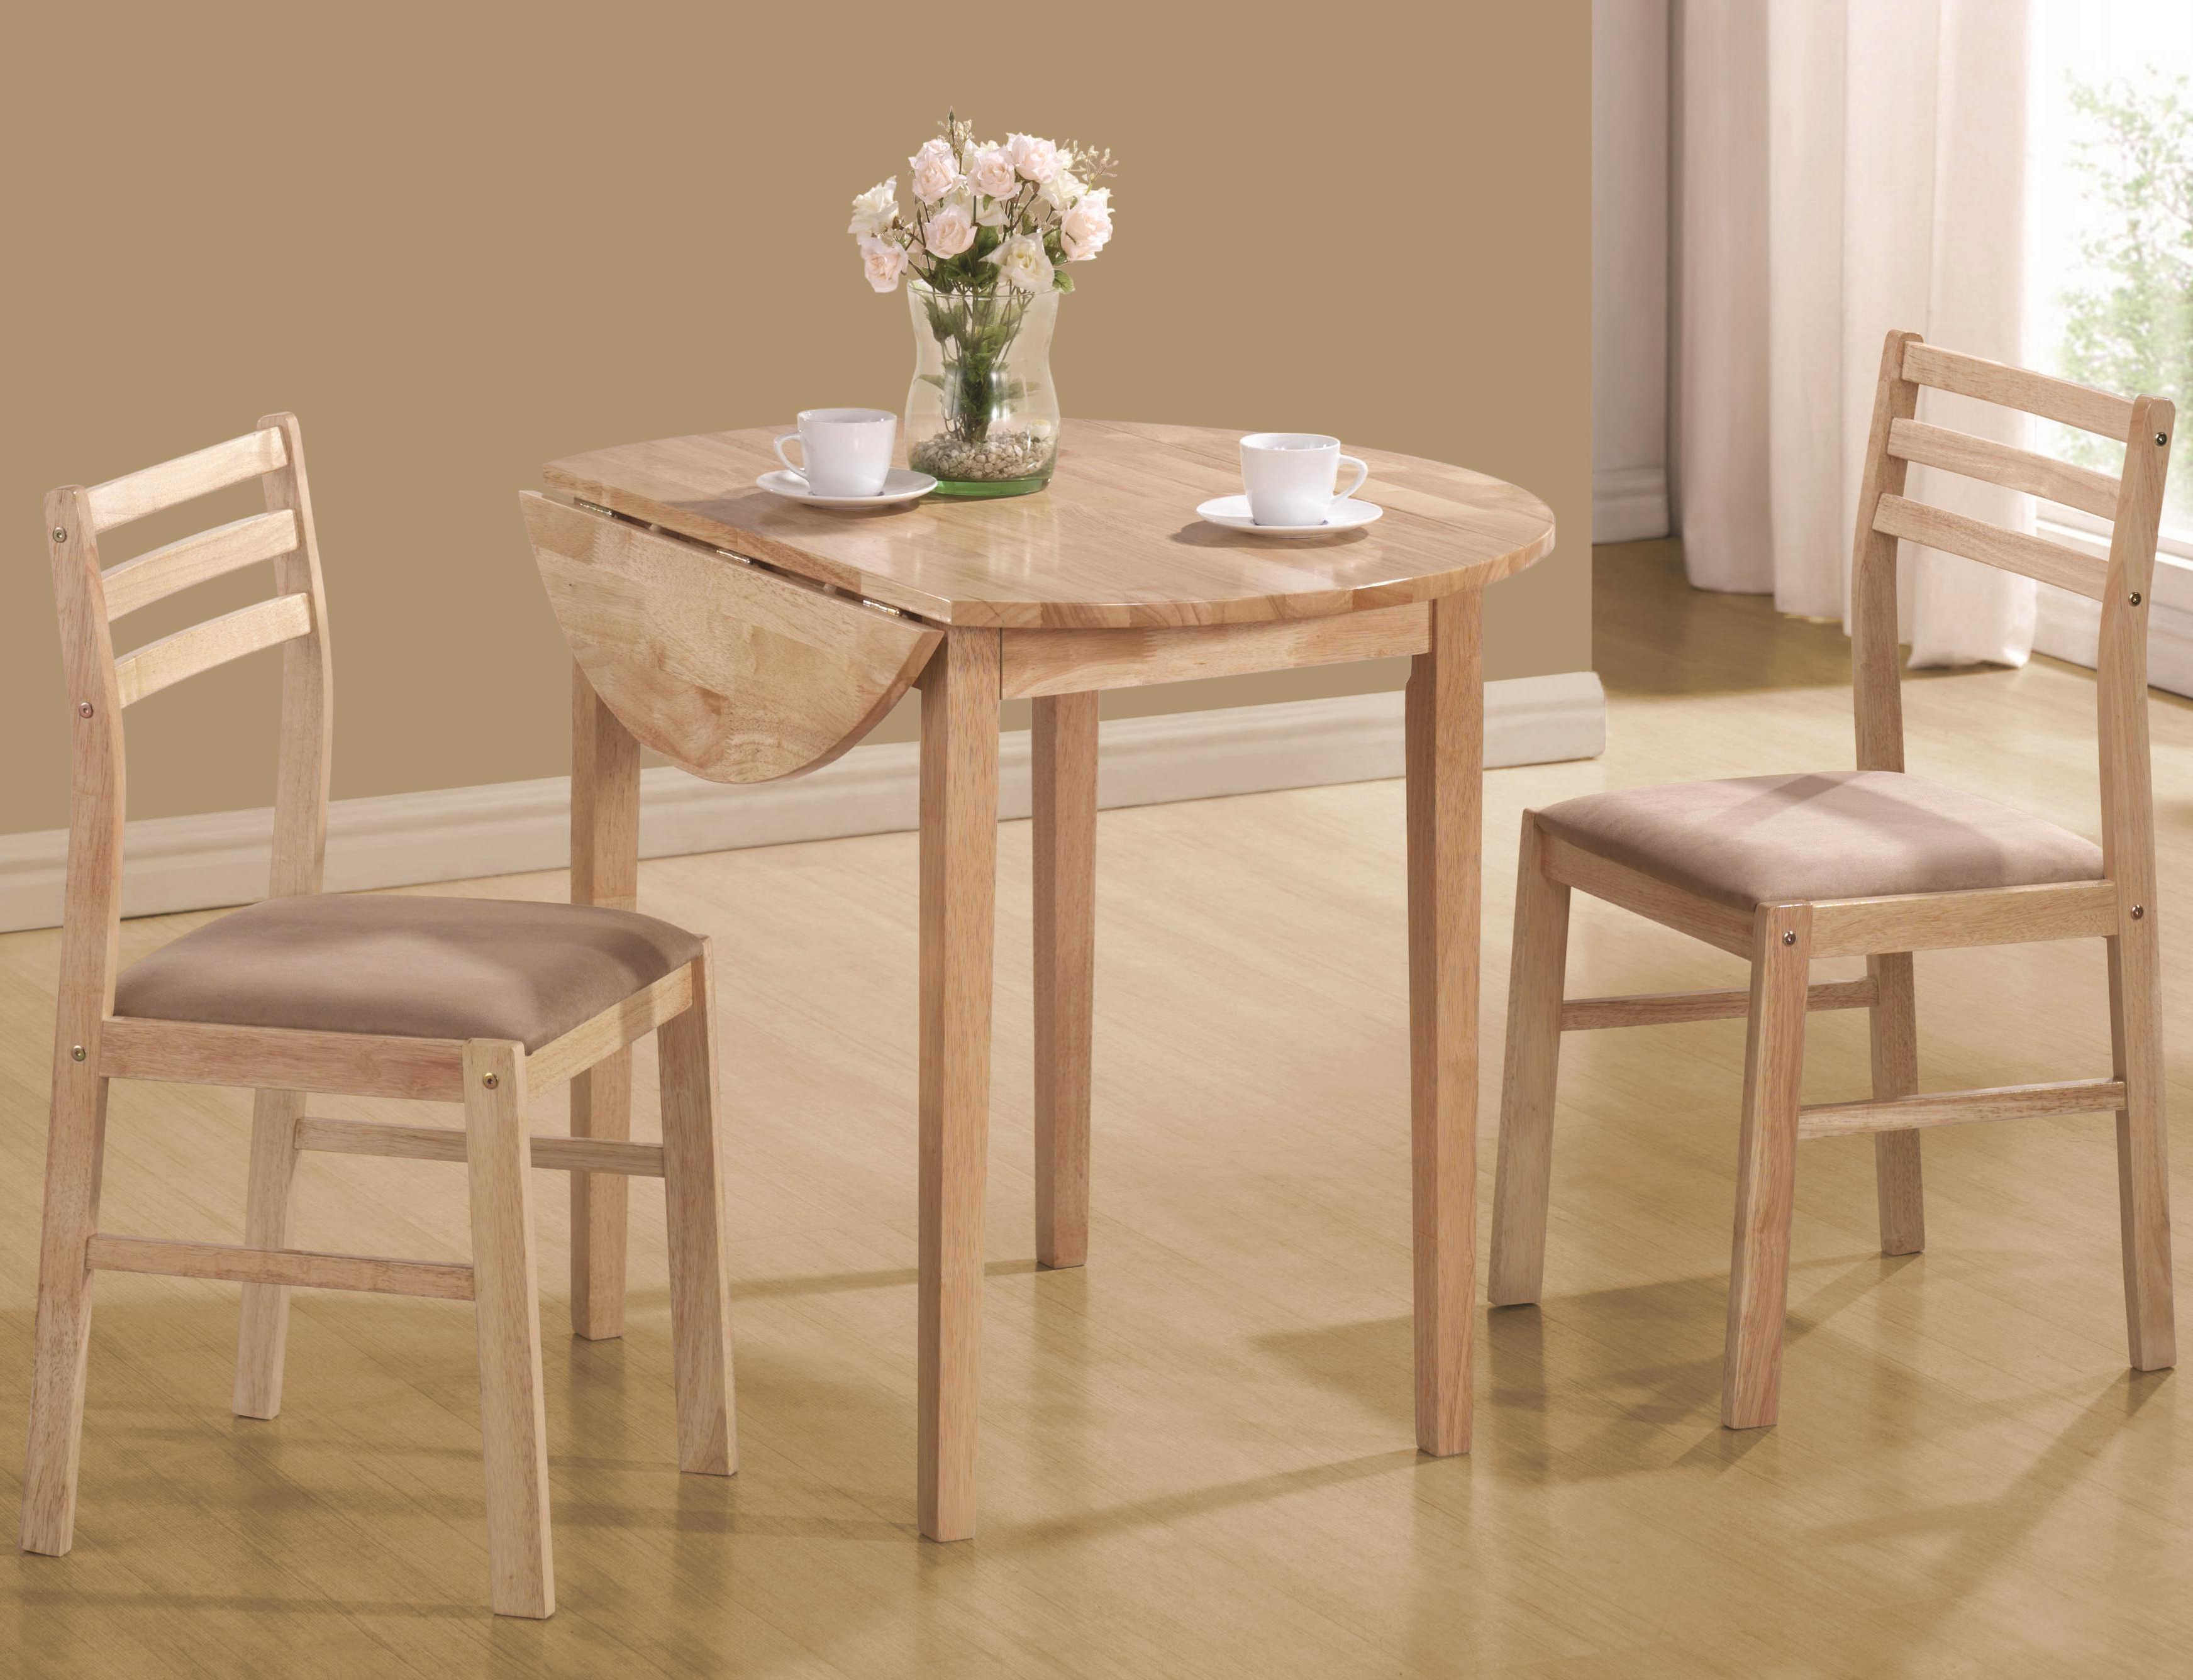 Winsome 3 Piece Counter Height Dining Sets For Well Liked Dinettes Casual 3 Piece Table & Chair Setcoaster At Value City Furniture (View 20 of 20)